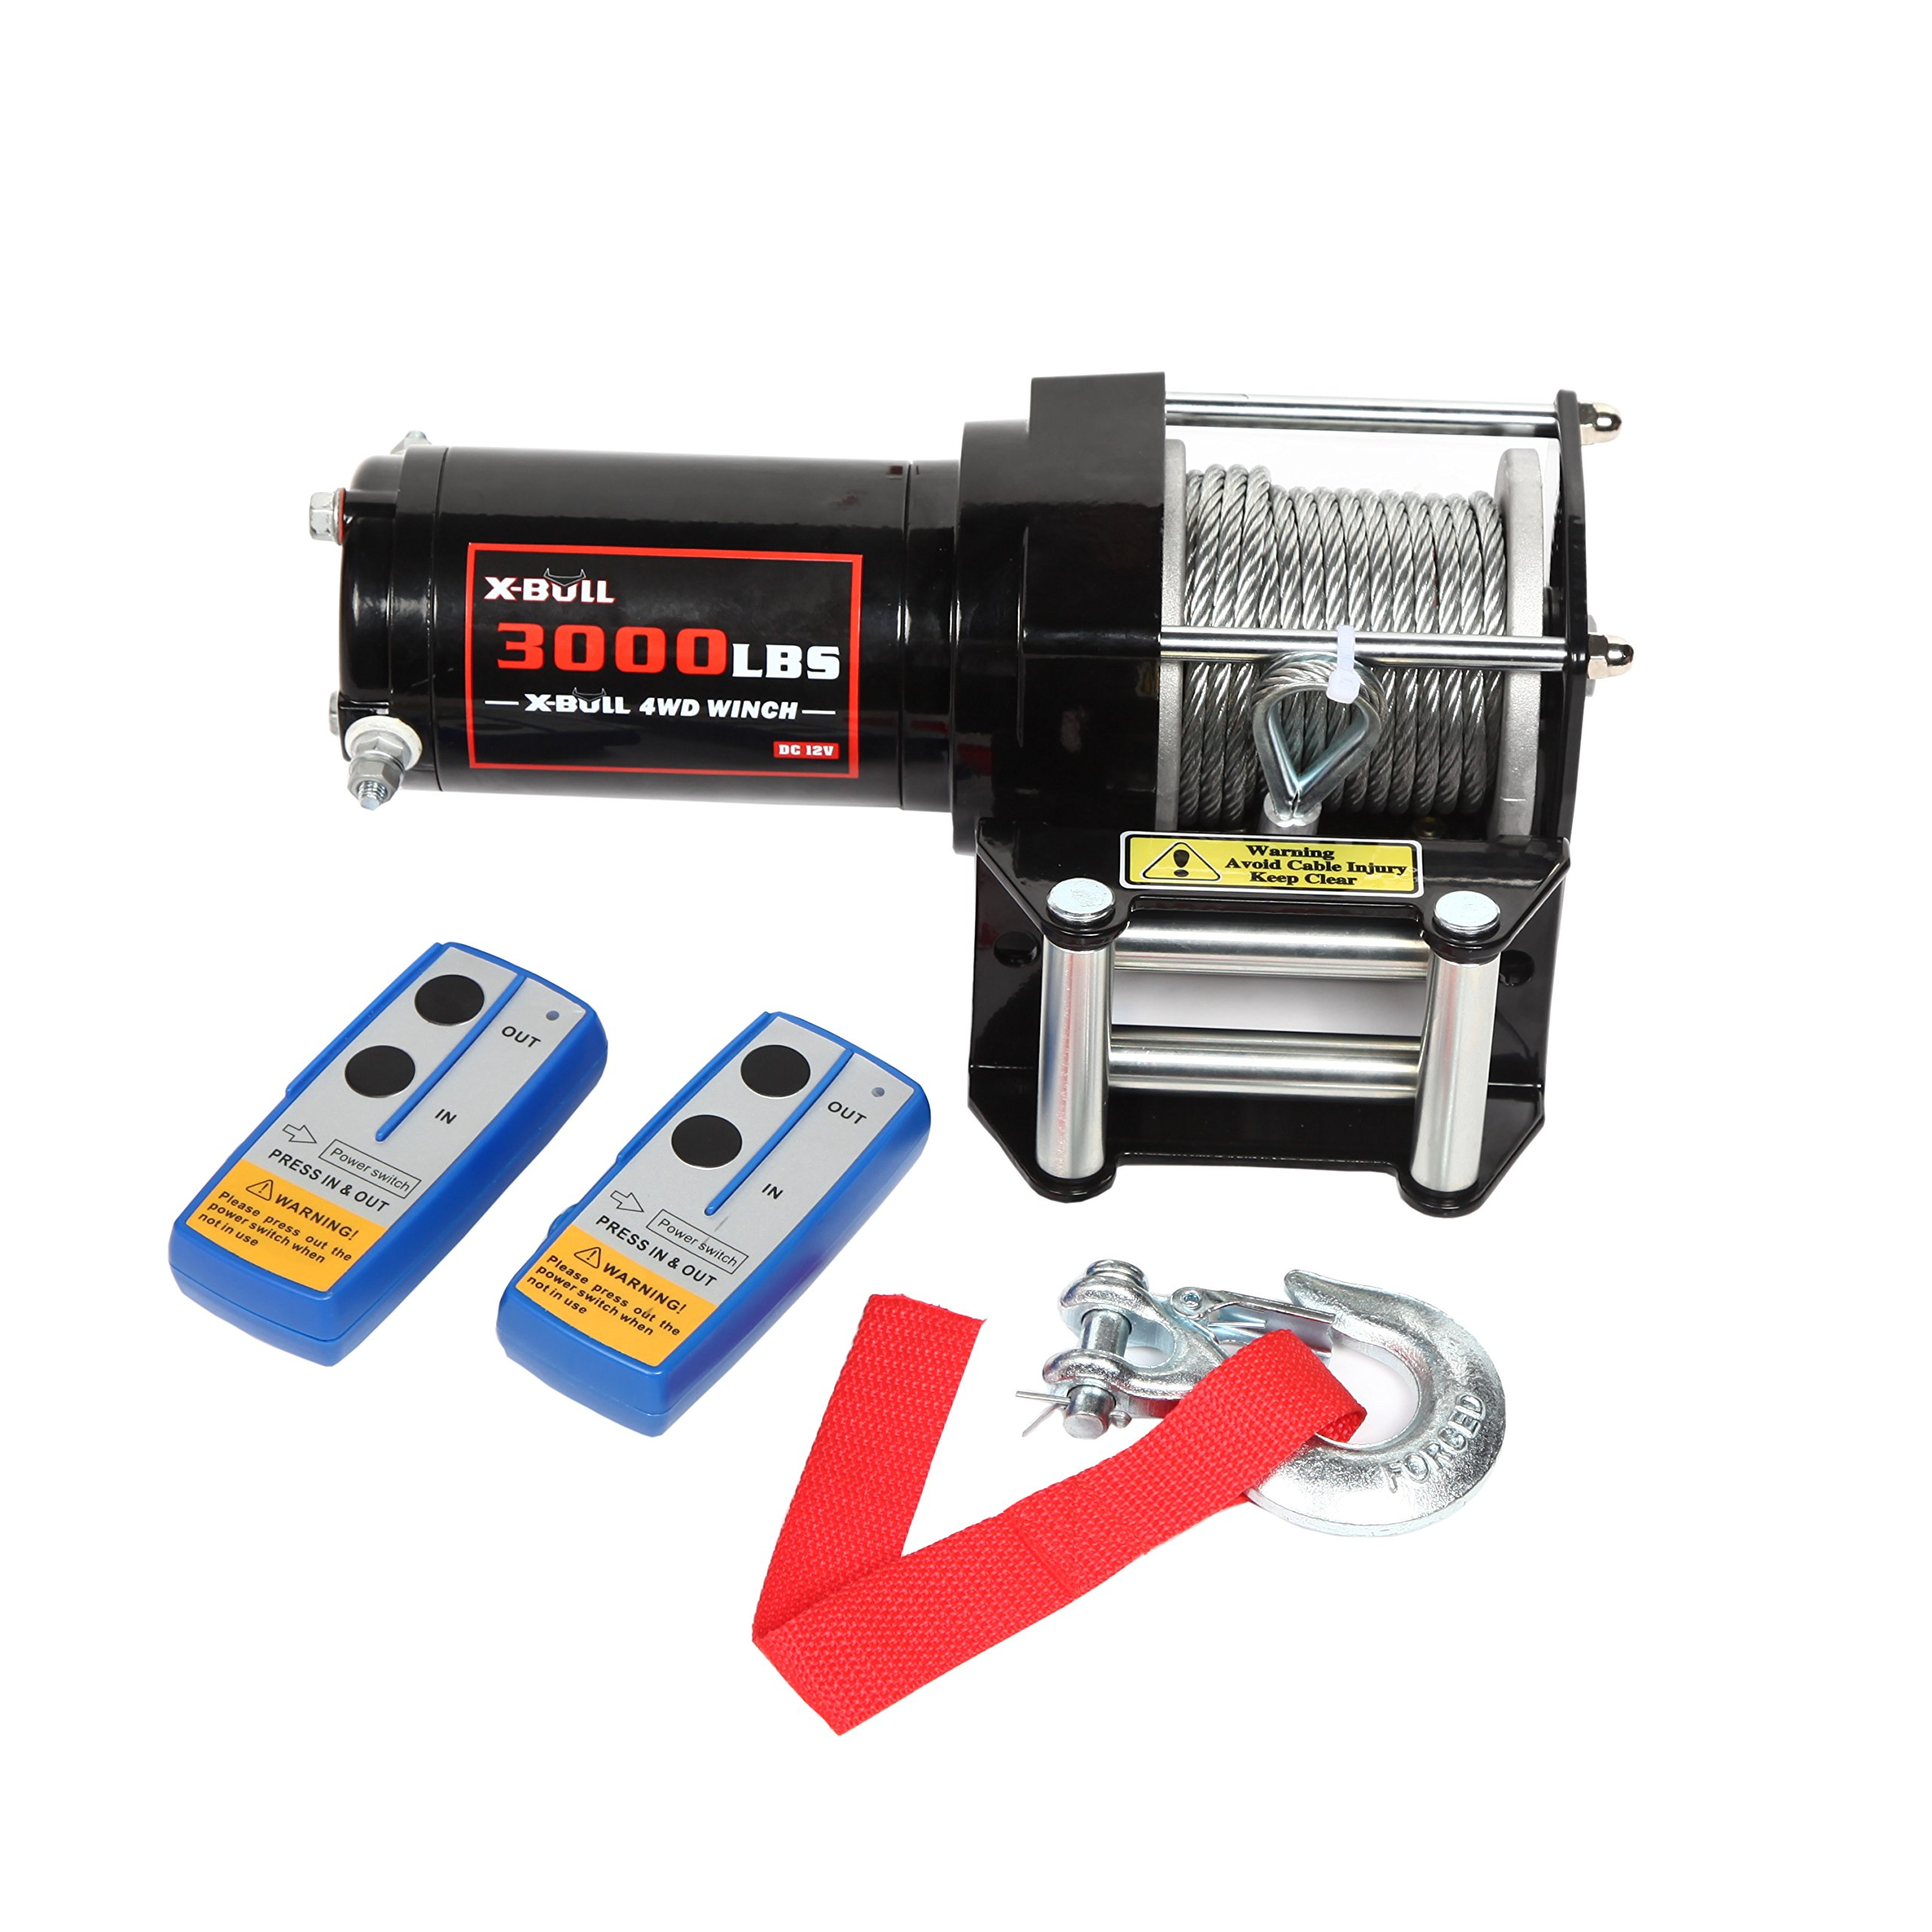 X-BULL 12V 3000LBS/1360kg Electric ATV Winch 2 Remote Wireles control Steel Cable Boat ATV Kit